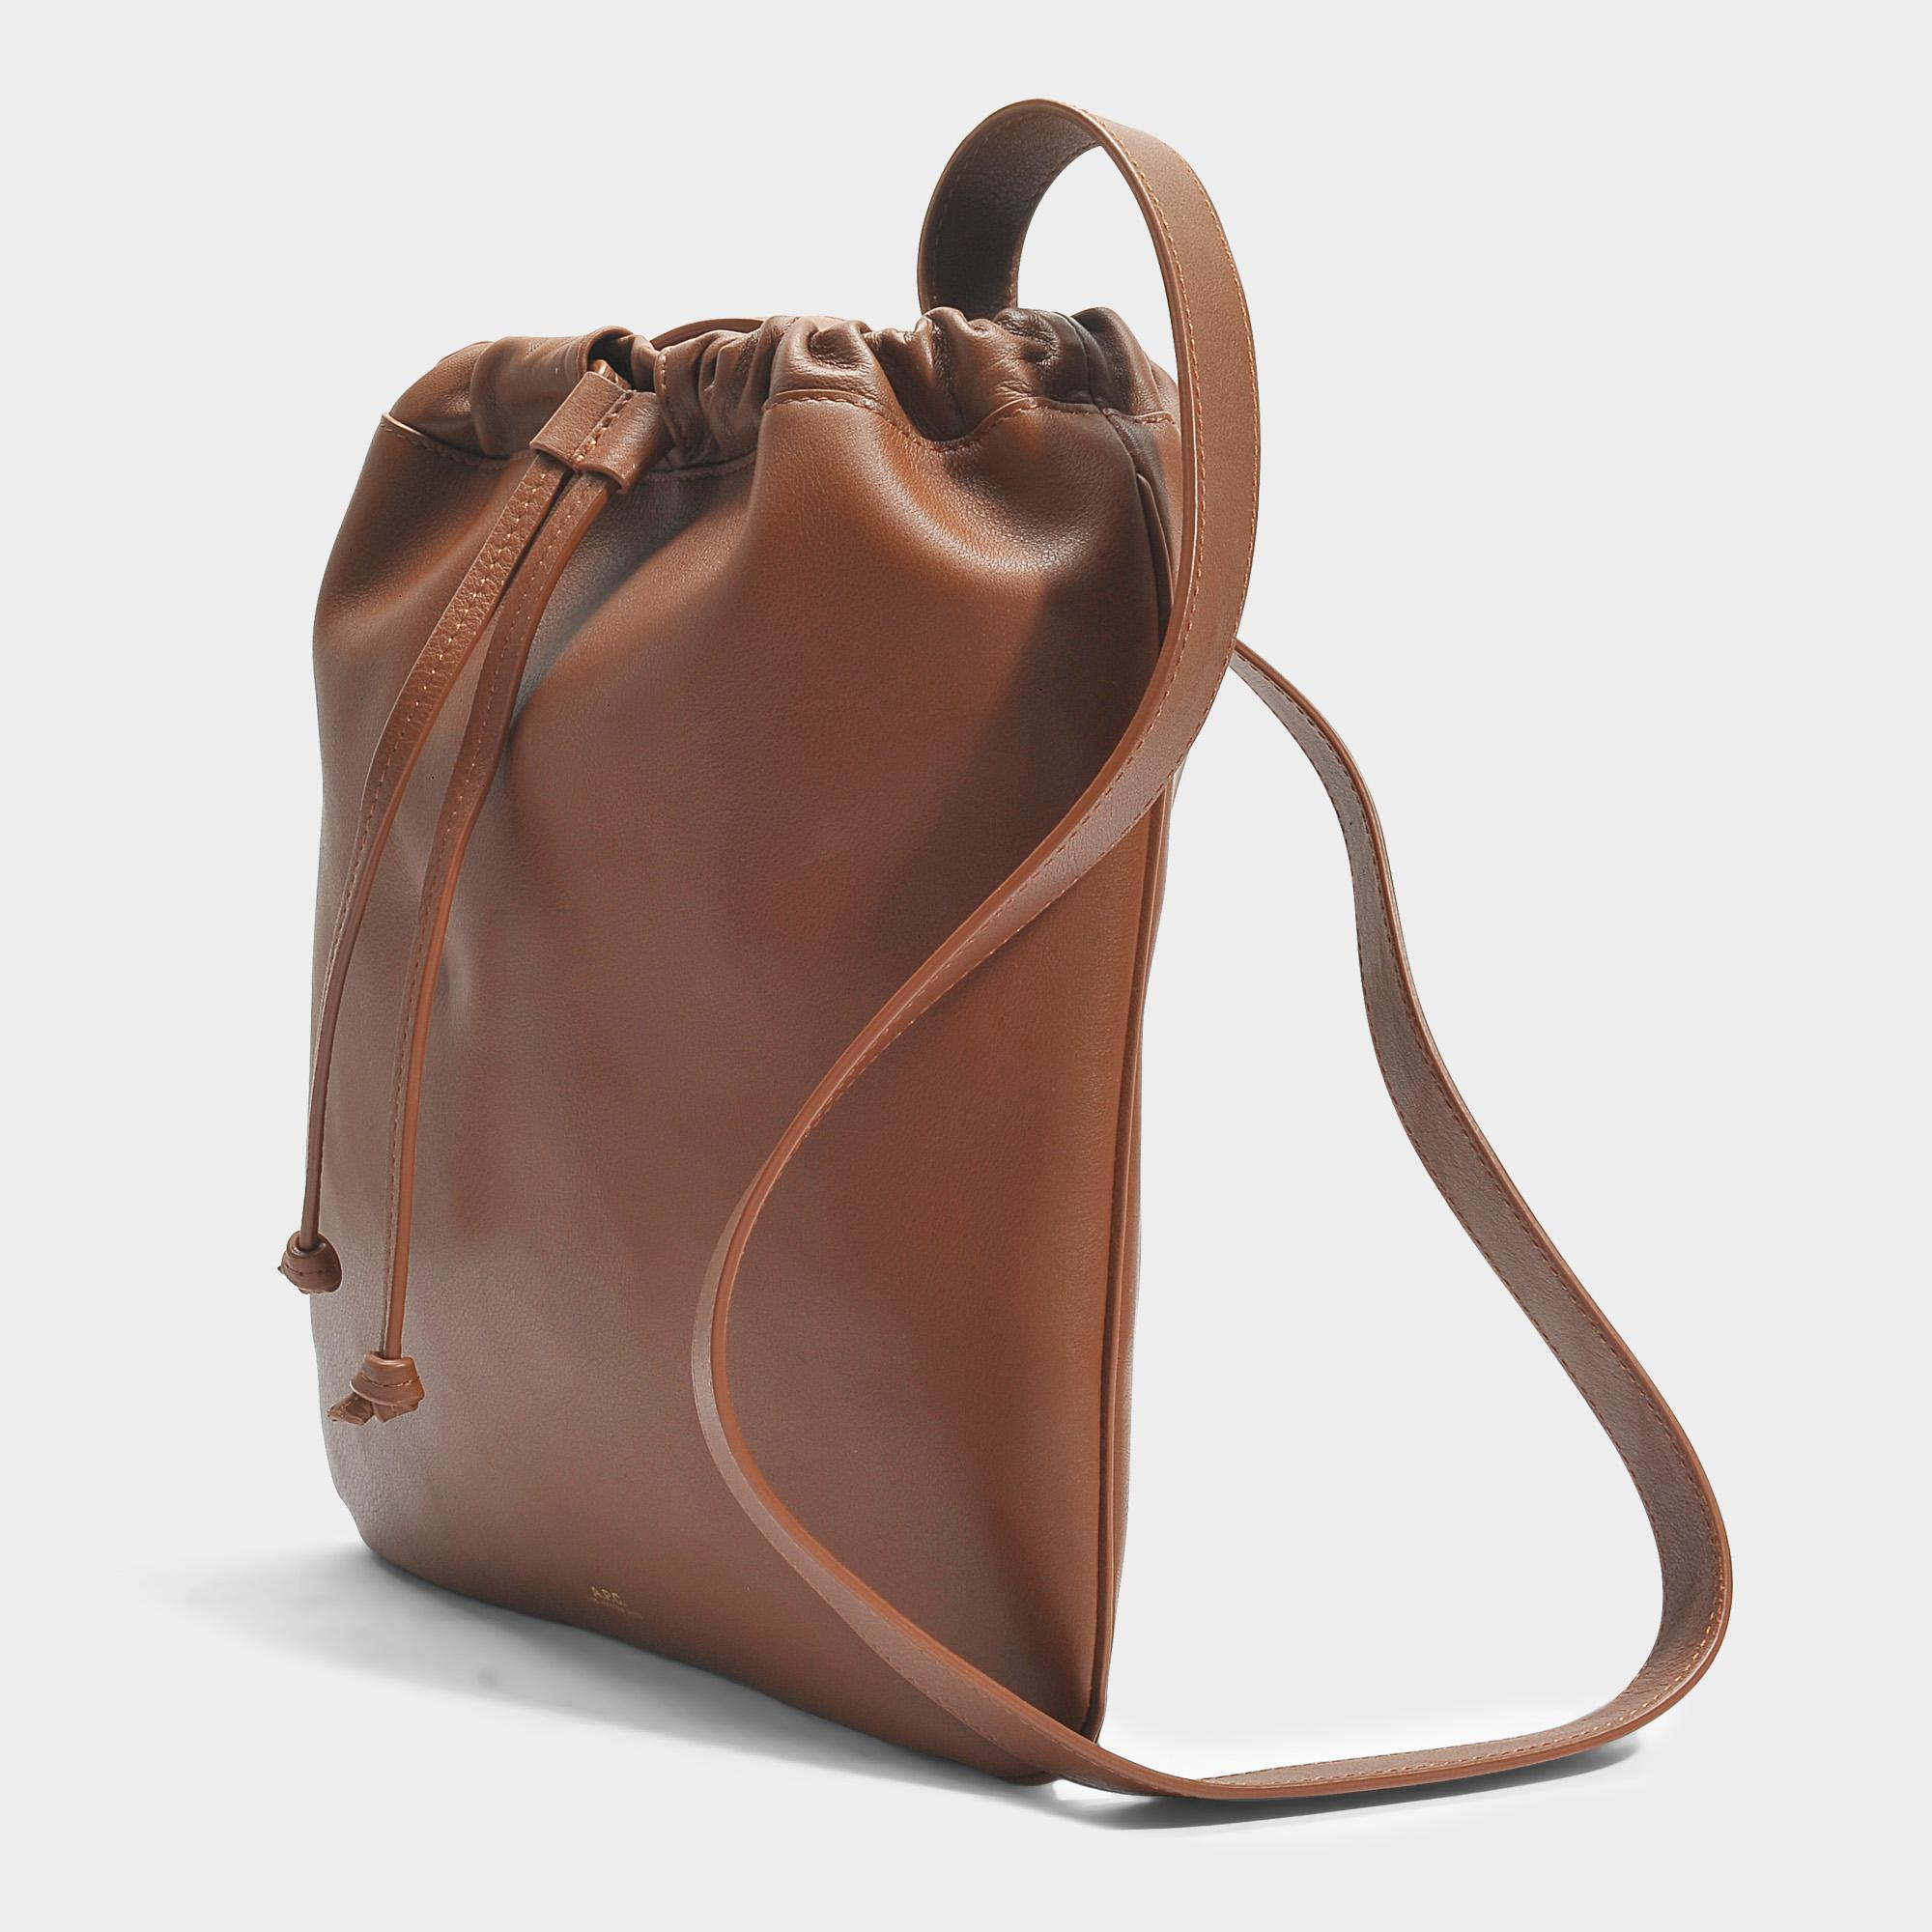 Havane Bag in Noisette Smooth Calfskin A.P.C. Clearance Authentic Discount Eastbay Free Shipping Best Store To Get Outlet Popular ocYBmP